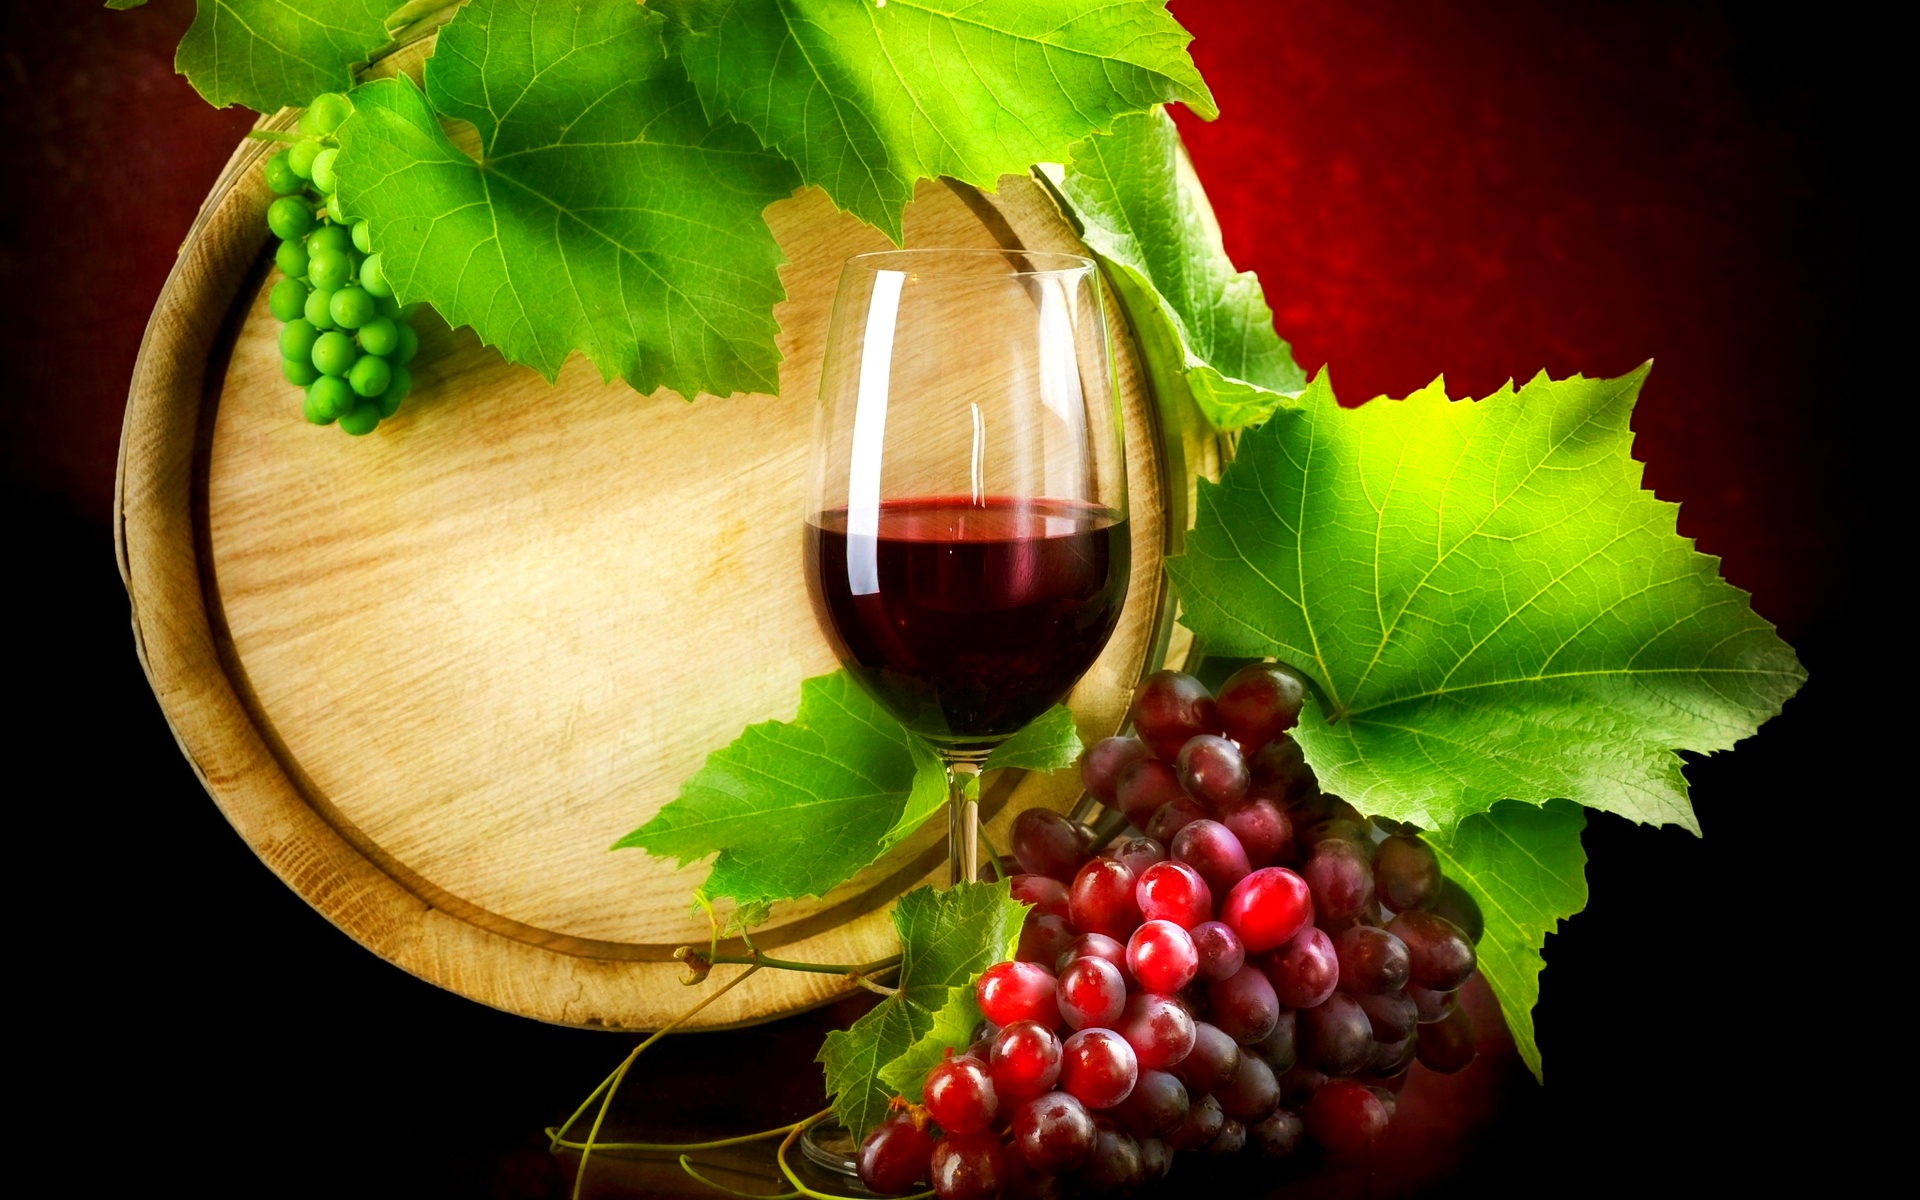 How to make wine at home. Step by step instruction about wine making